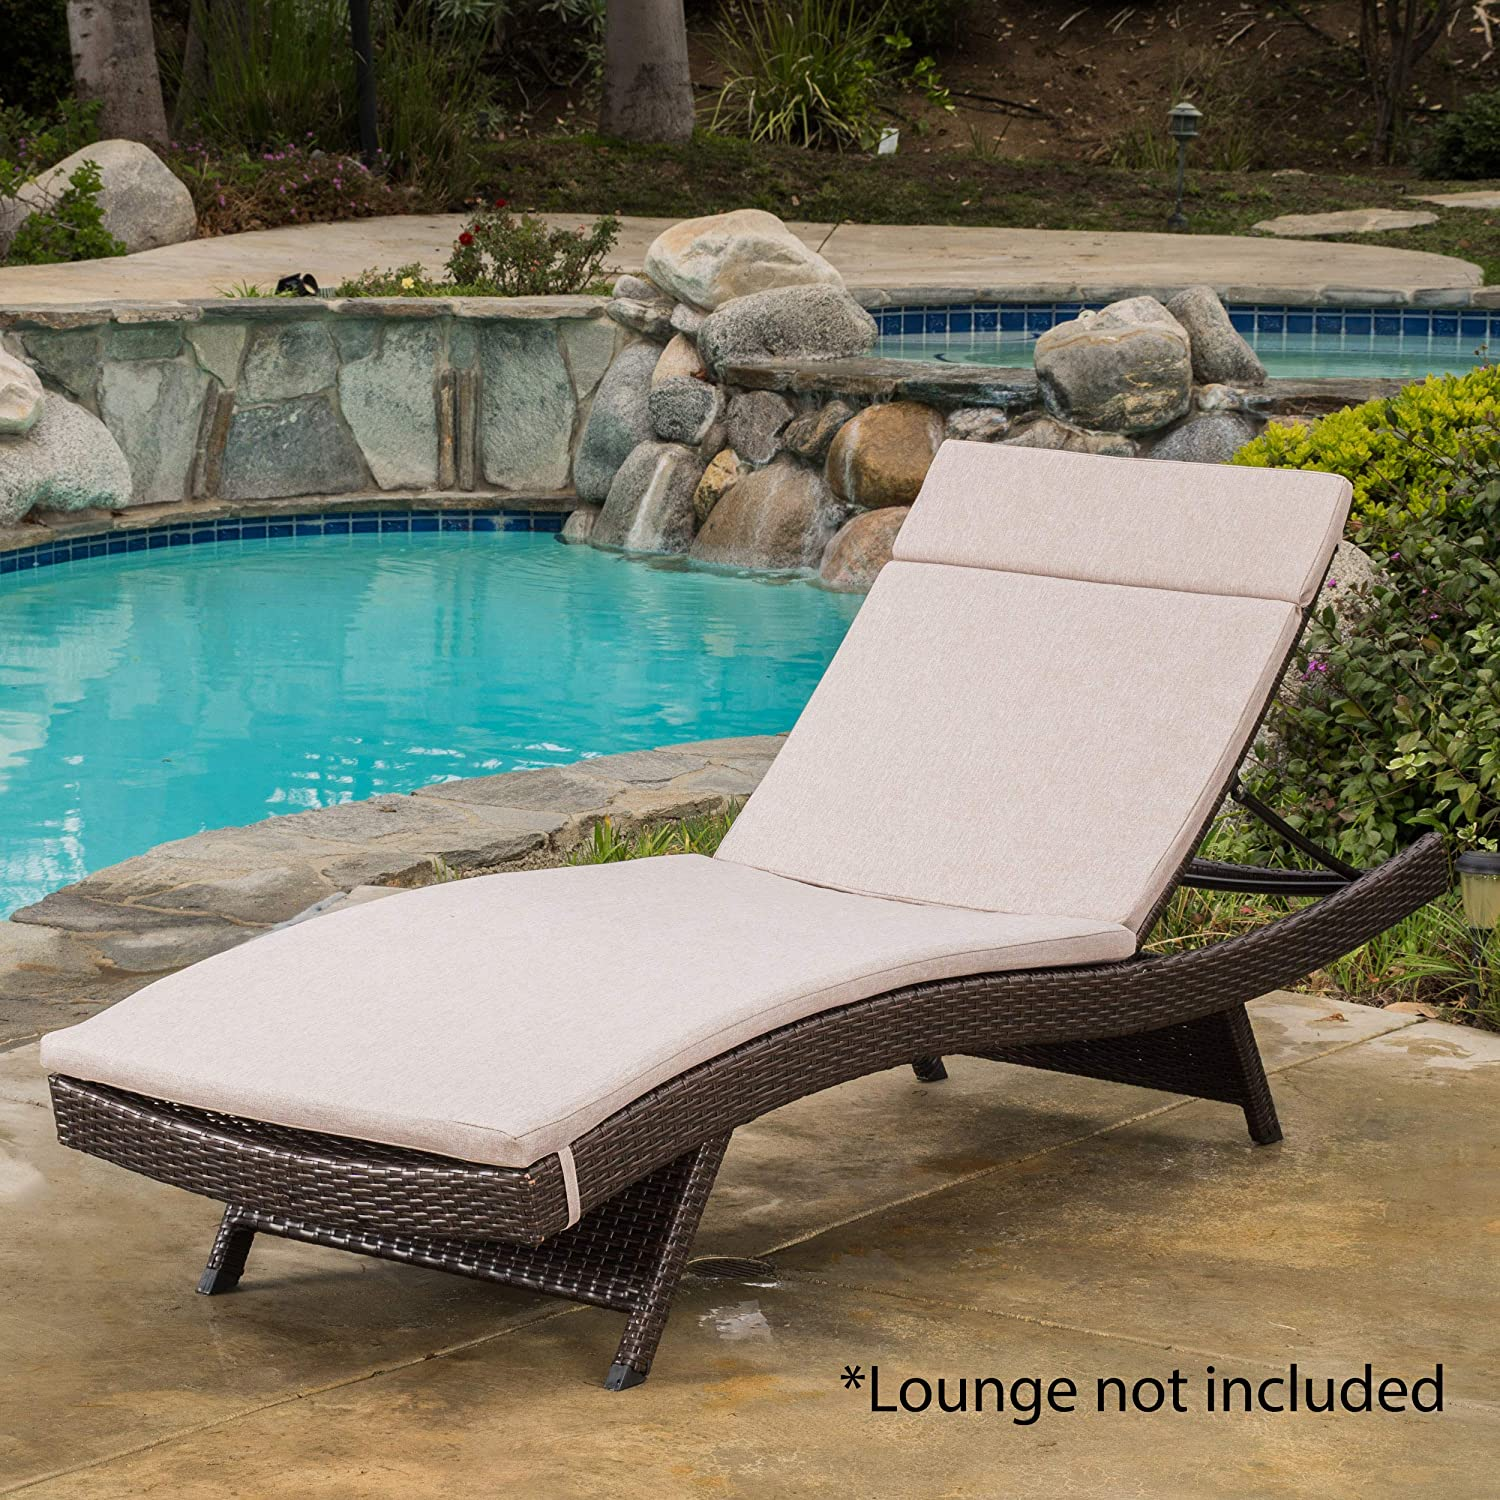 Great Deal Furniture Soleil Outdoor Chaise Lounge Cushion, Textured Beige